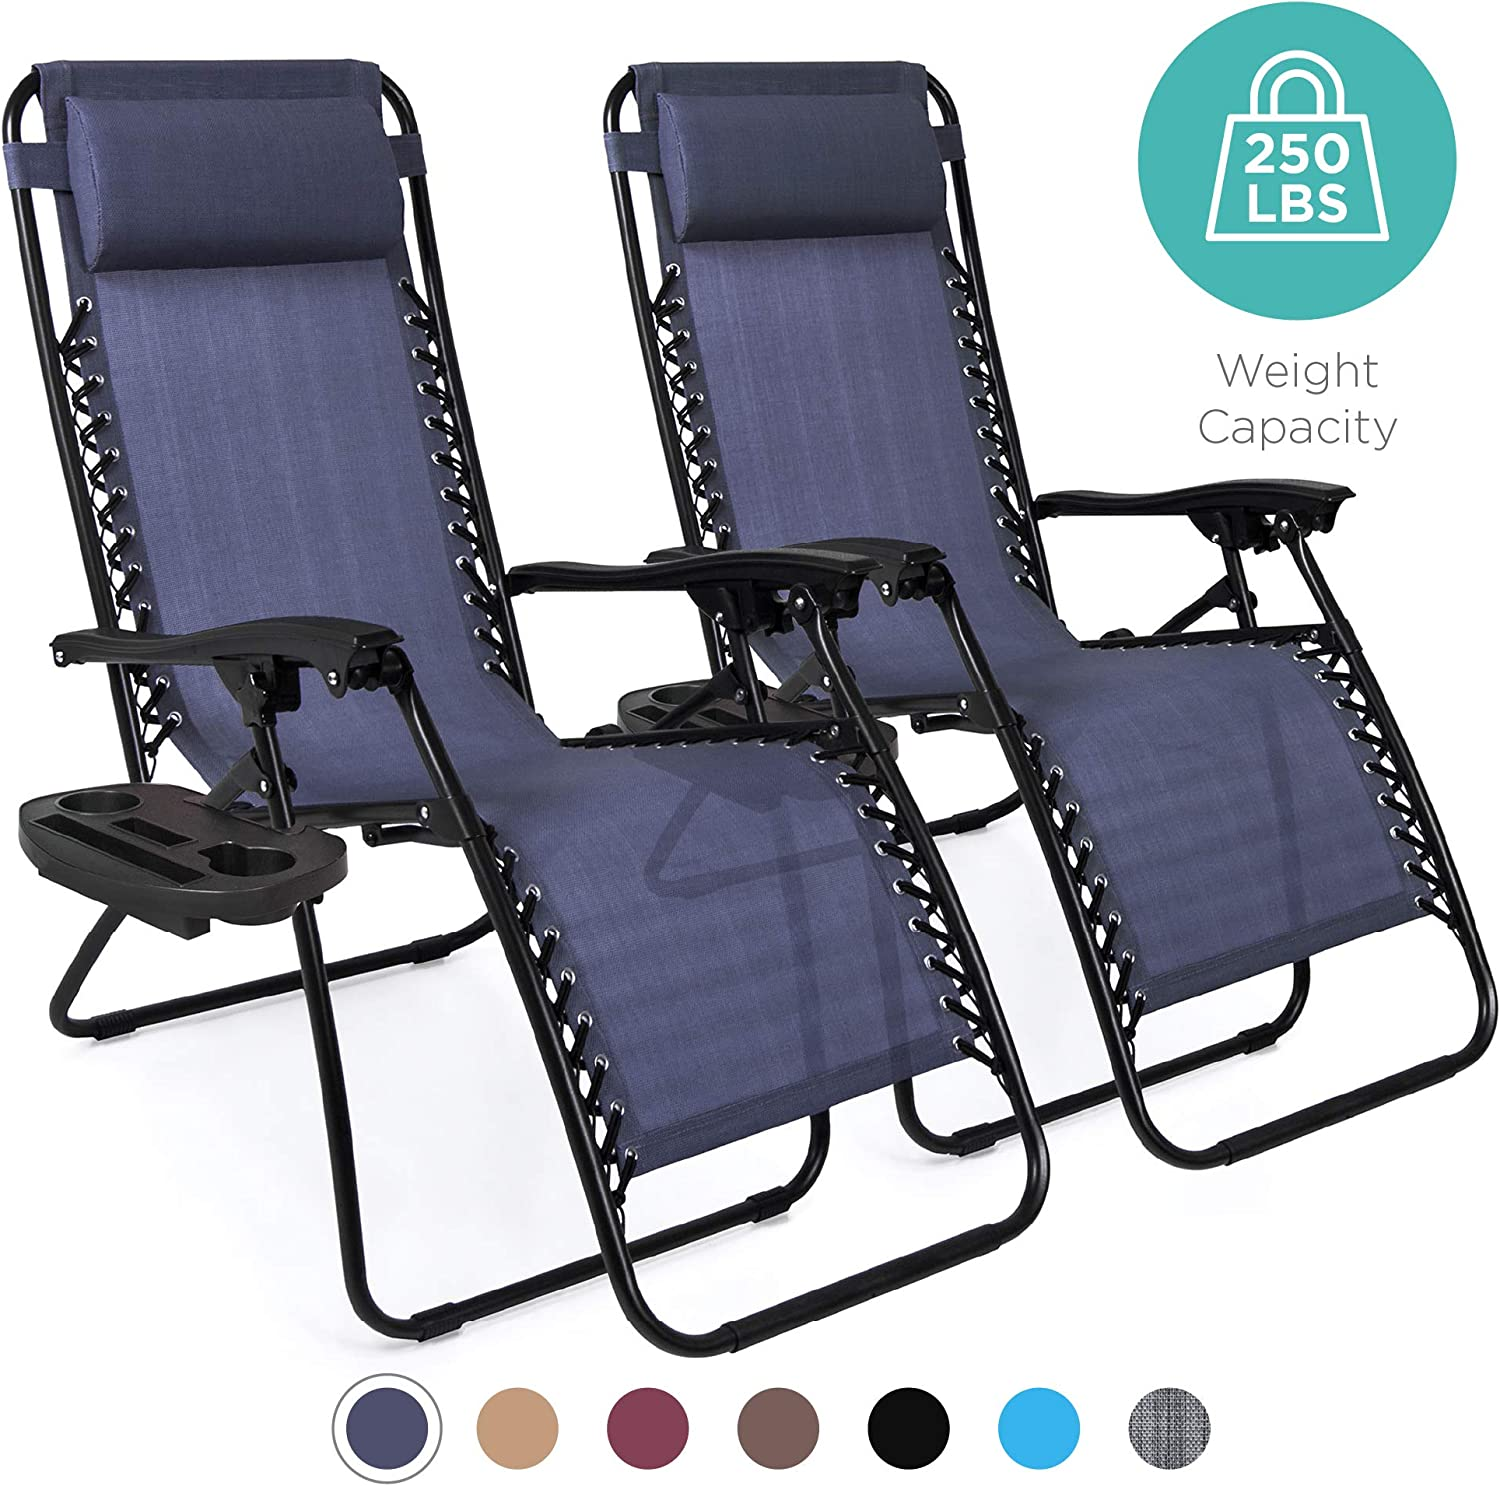 Best Choice Products Set of 2 Adjustable Zero Gravity Lounge Chair Recliners for Patio, Pool wCup Holders Blue